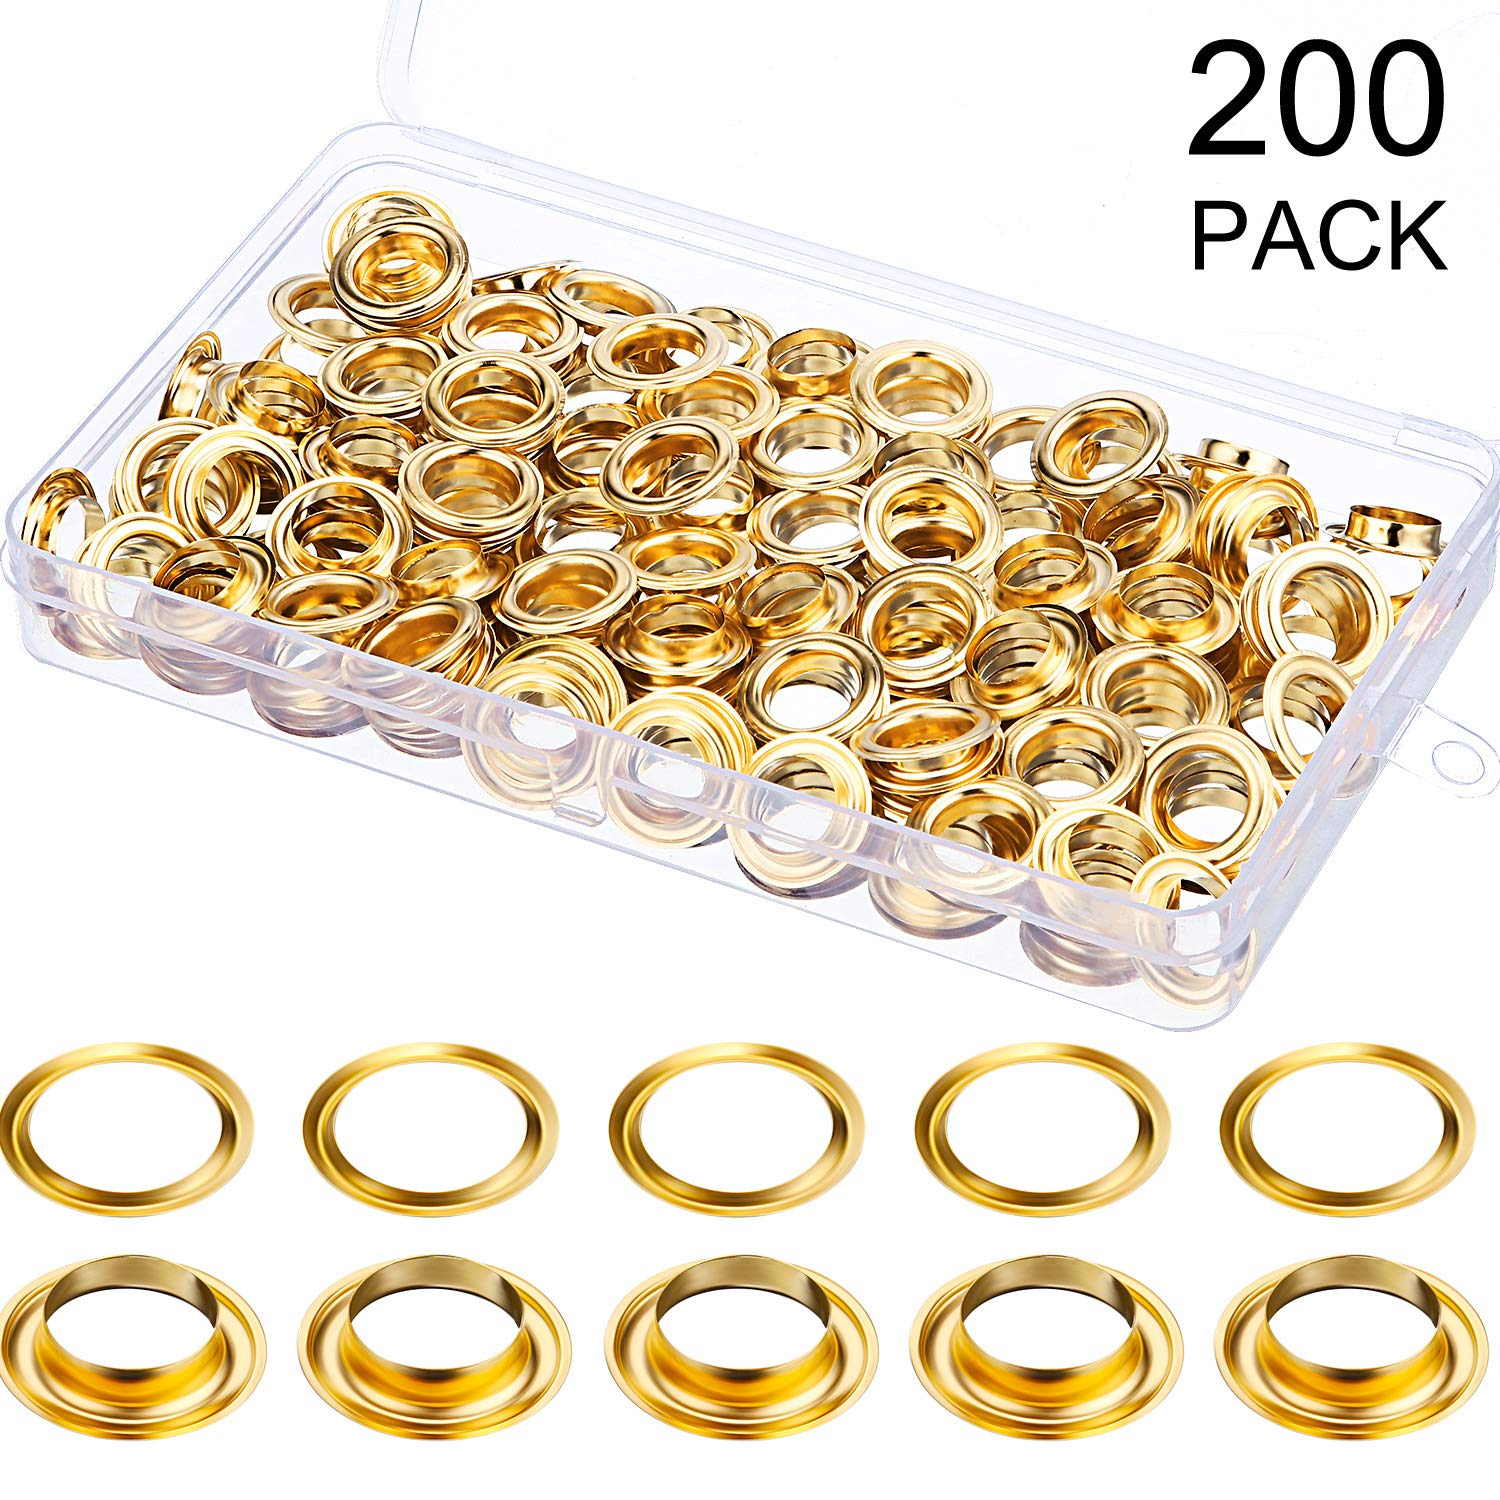 200 Pieces Metal Grommets Eyelets Self Backing with Flat Washer for Bead Clothes Leather Canvas Cores DIY Craft 6.35 mm, Bronze